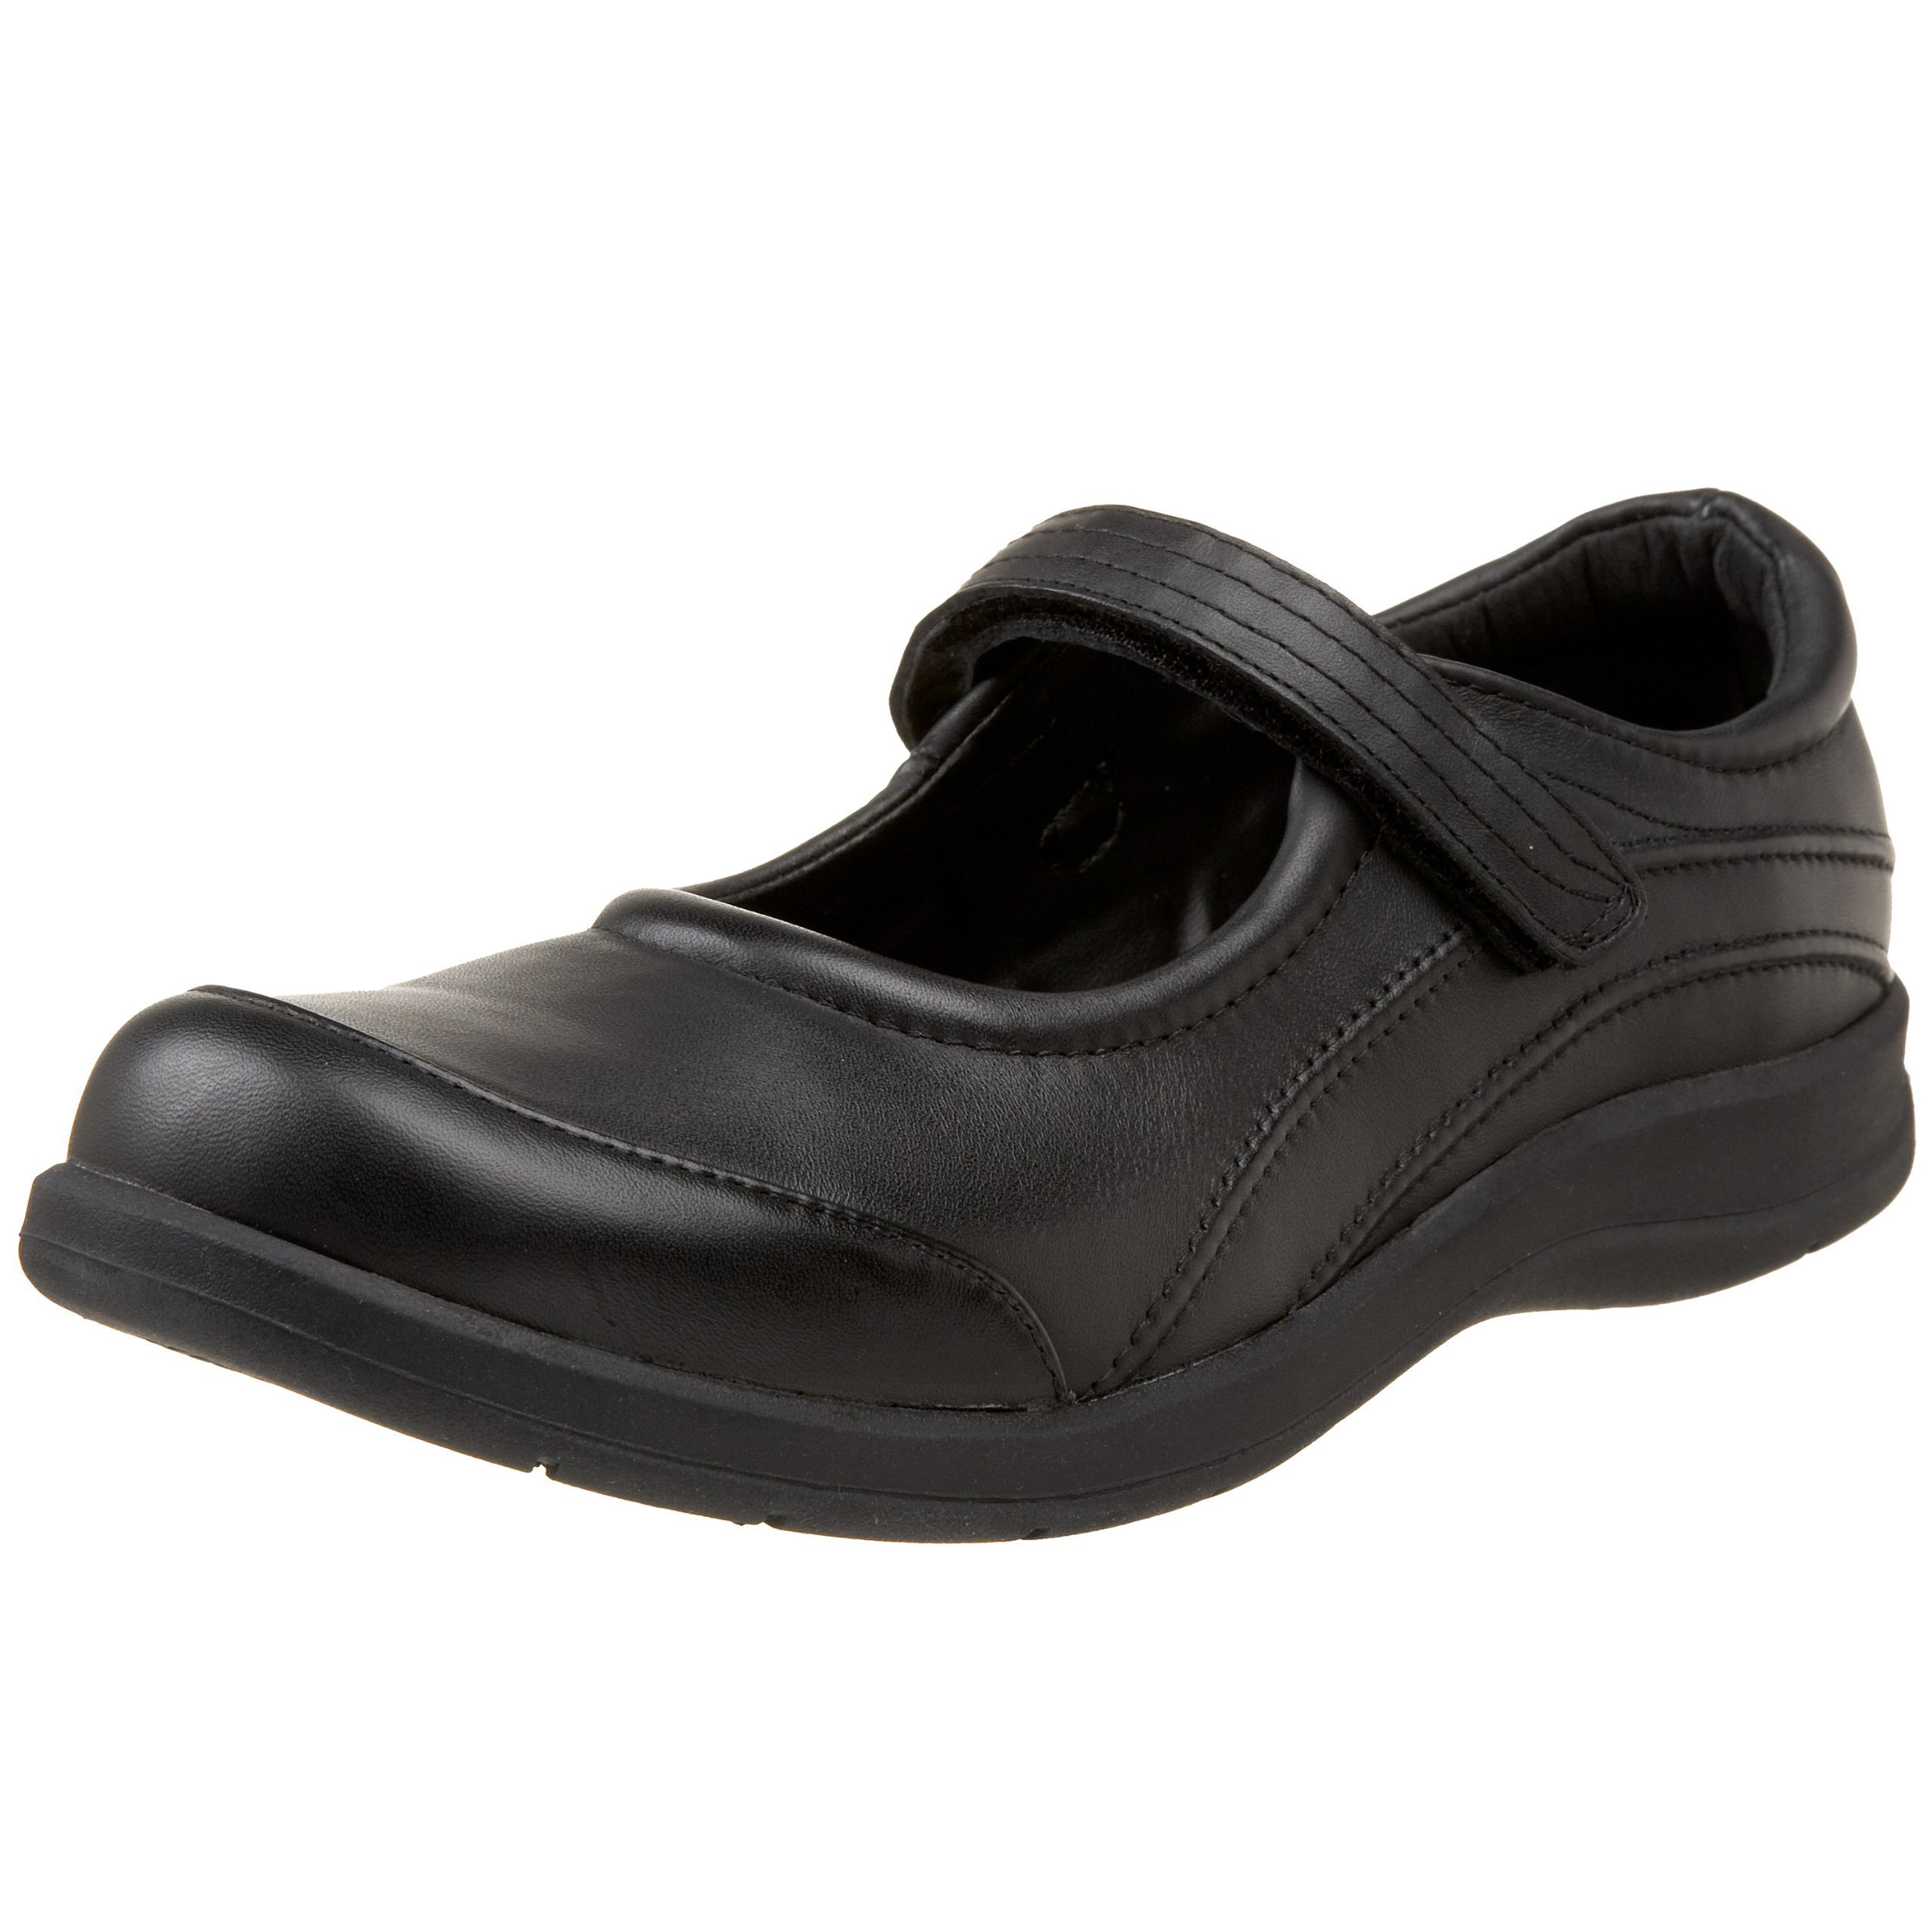 Stride Rite Little Kid/Big Kid Molly Mary Jane,Black Leather,10 N US Toddler by Stride Rite (Image #1)